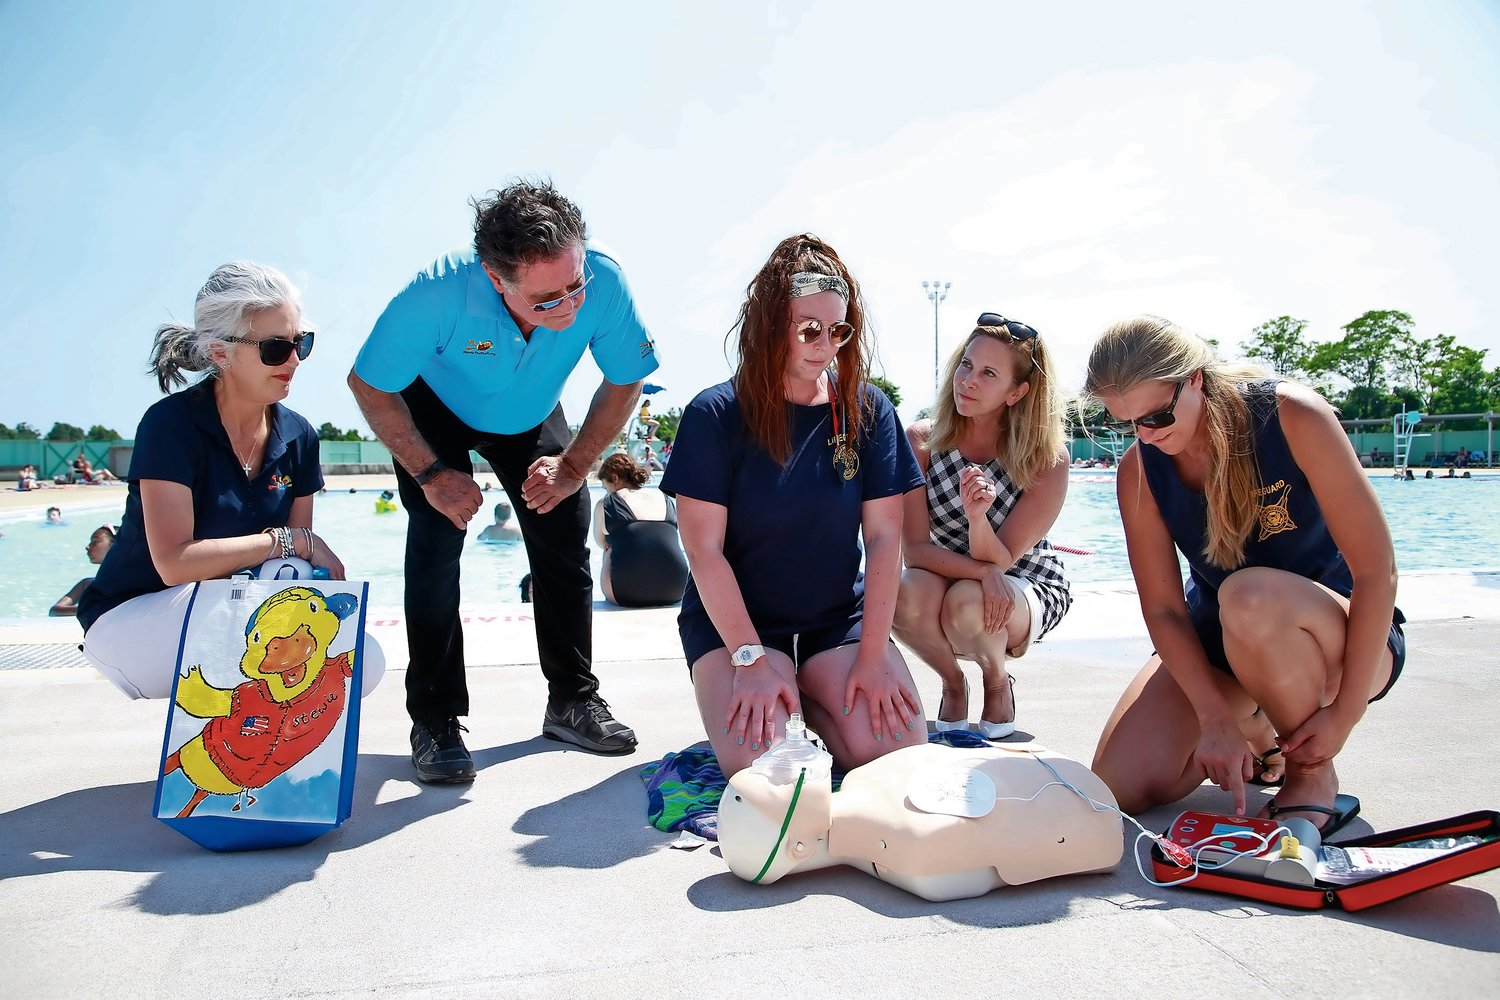 Kim, Stew and Gillen, in back, get low for a closer look at a defibrillator demonstration by Lifeguard Captain Erin McCarthy and Lifeguard Supervisor Ann Marie Hawkins.